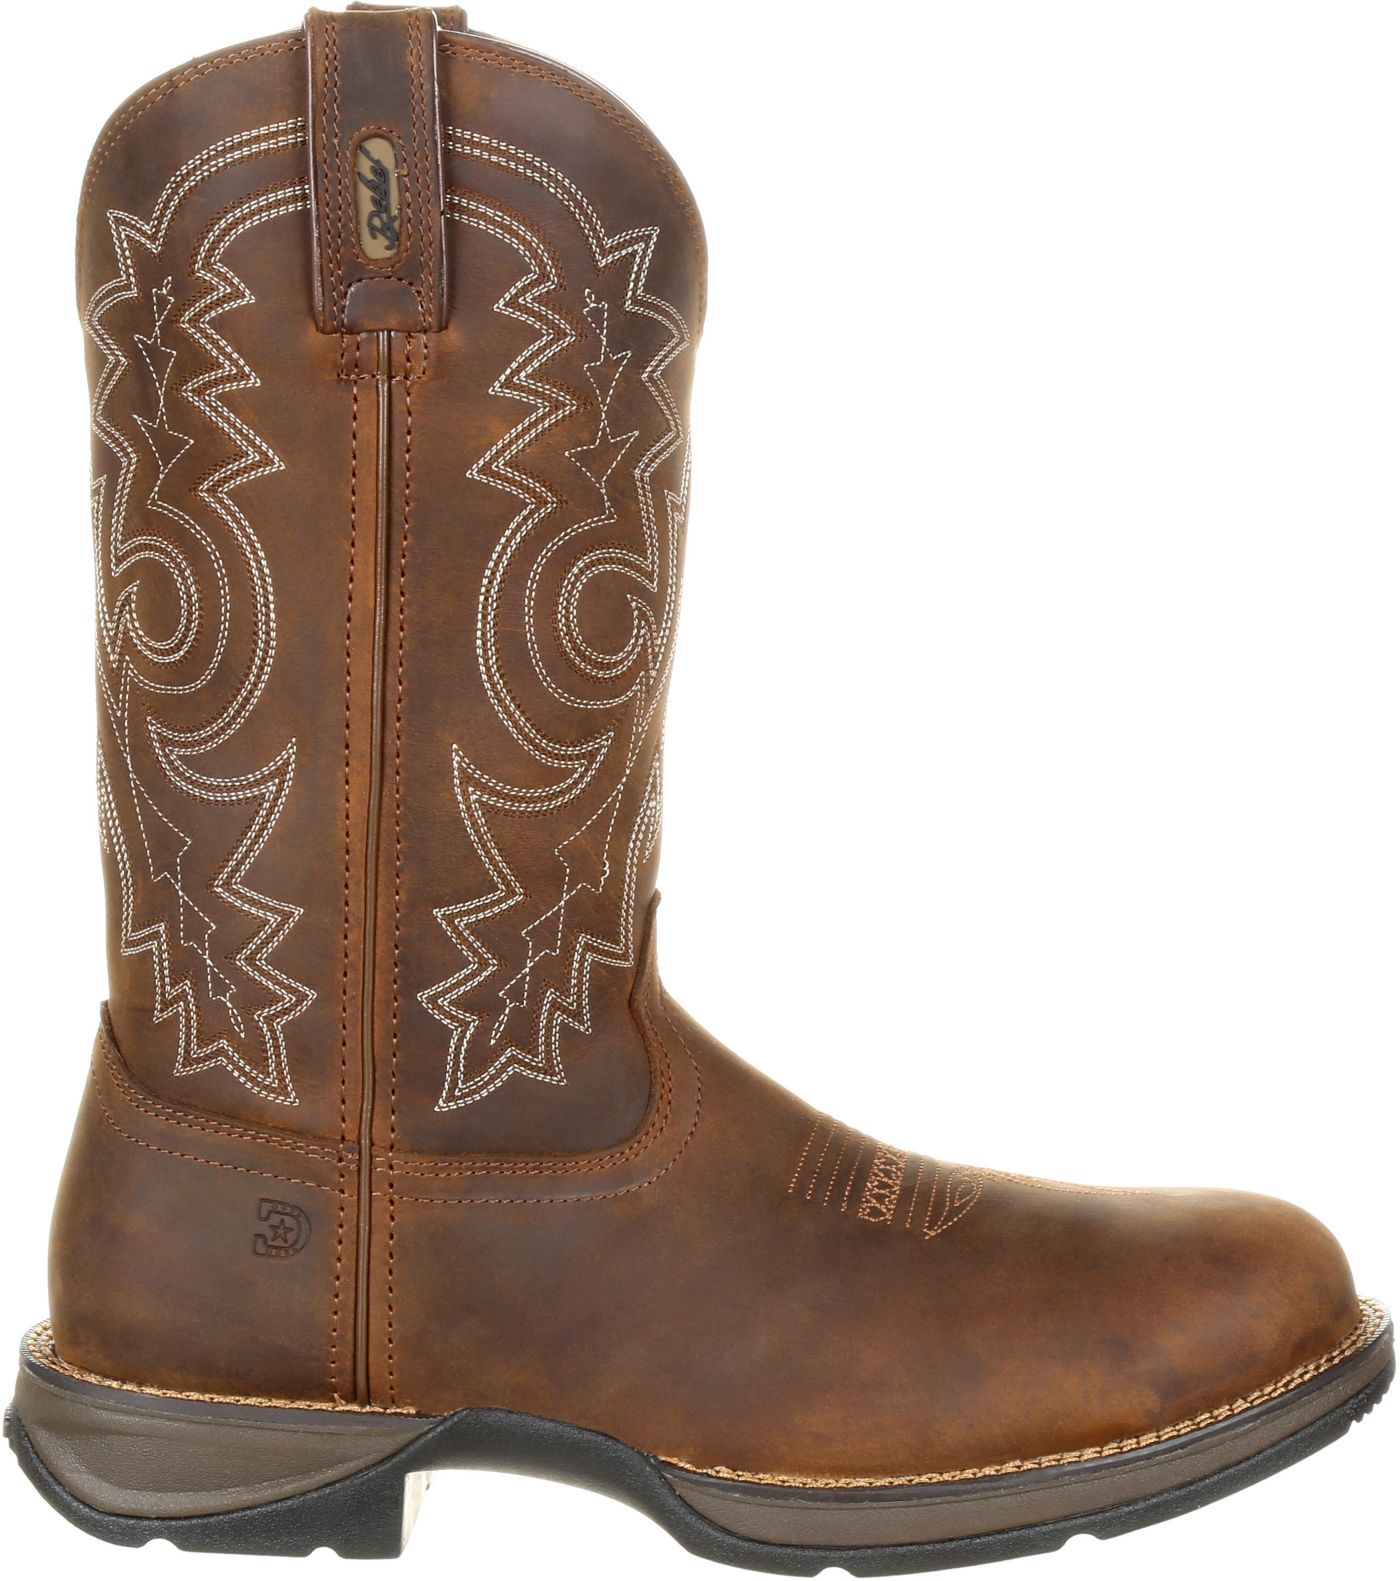 Durango Men's Rebel Waterproof Steel Toe Western Work Boots